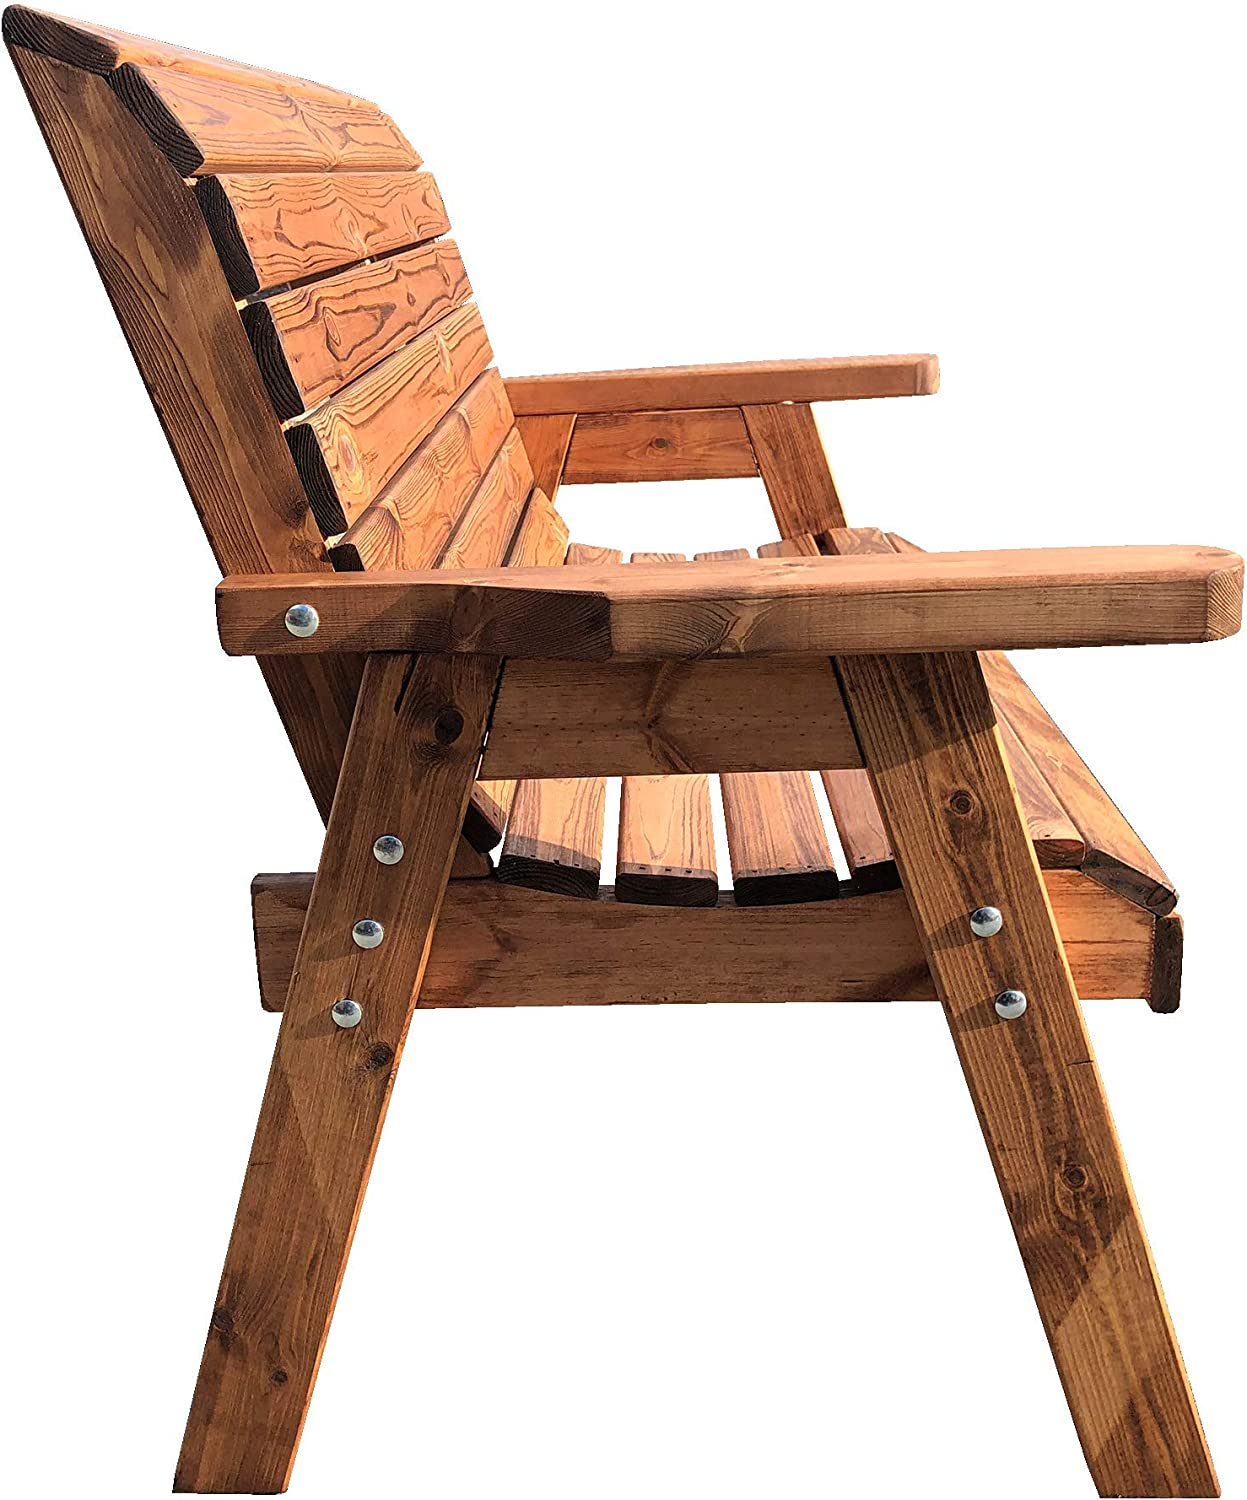 Super Saturday Simply Wood Imperial Wooden Garden Bench ...